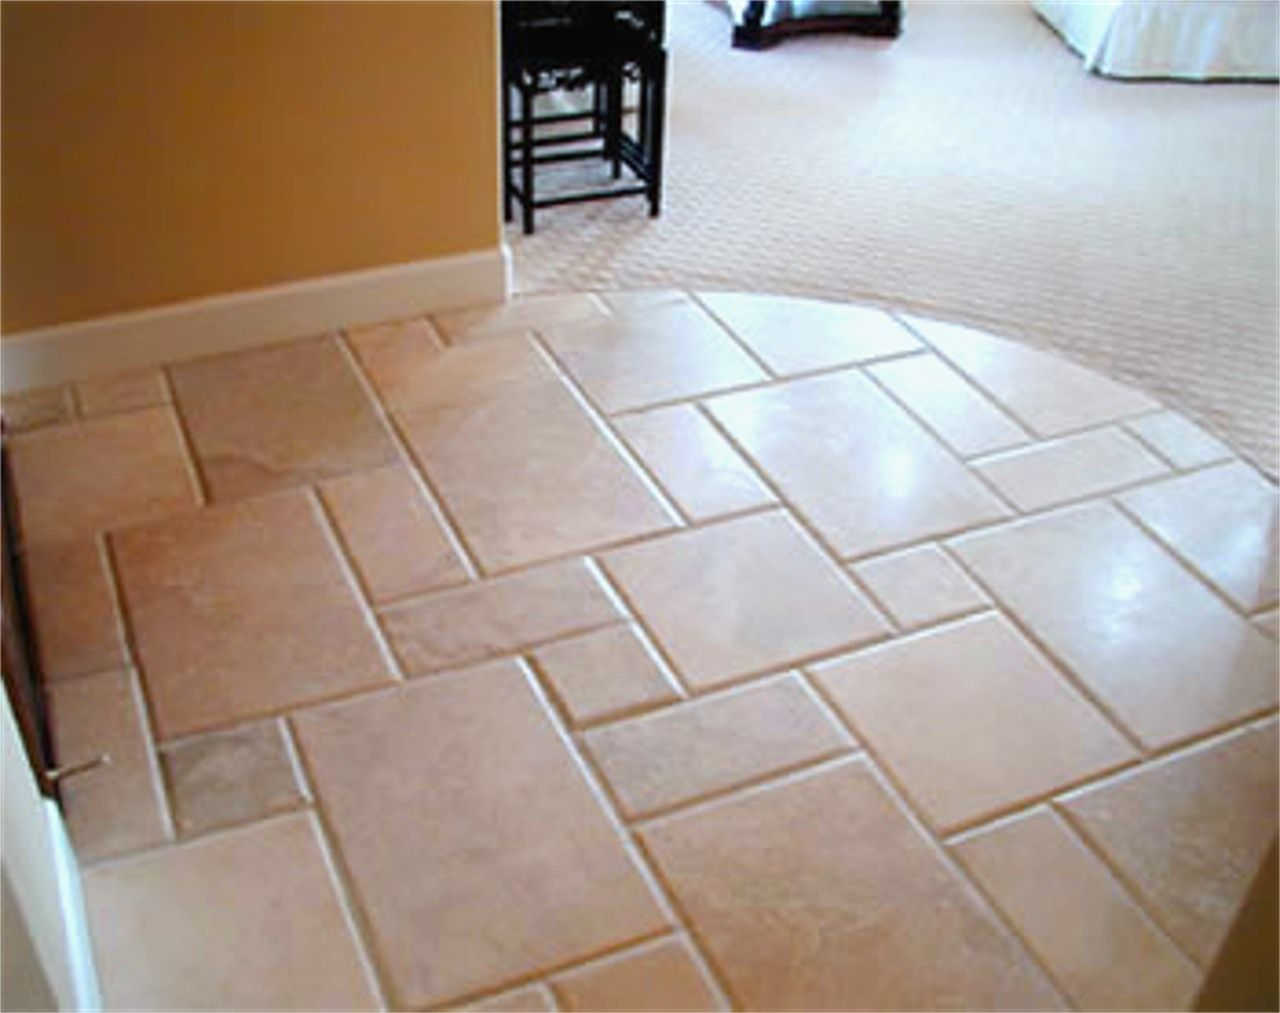 Ceramic Floor Tile Designs ceramic tile floor design patterns | ceramic tile flooring